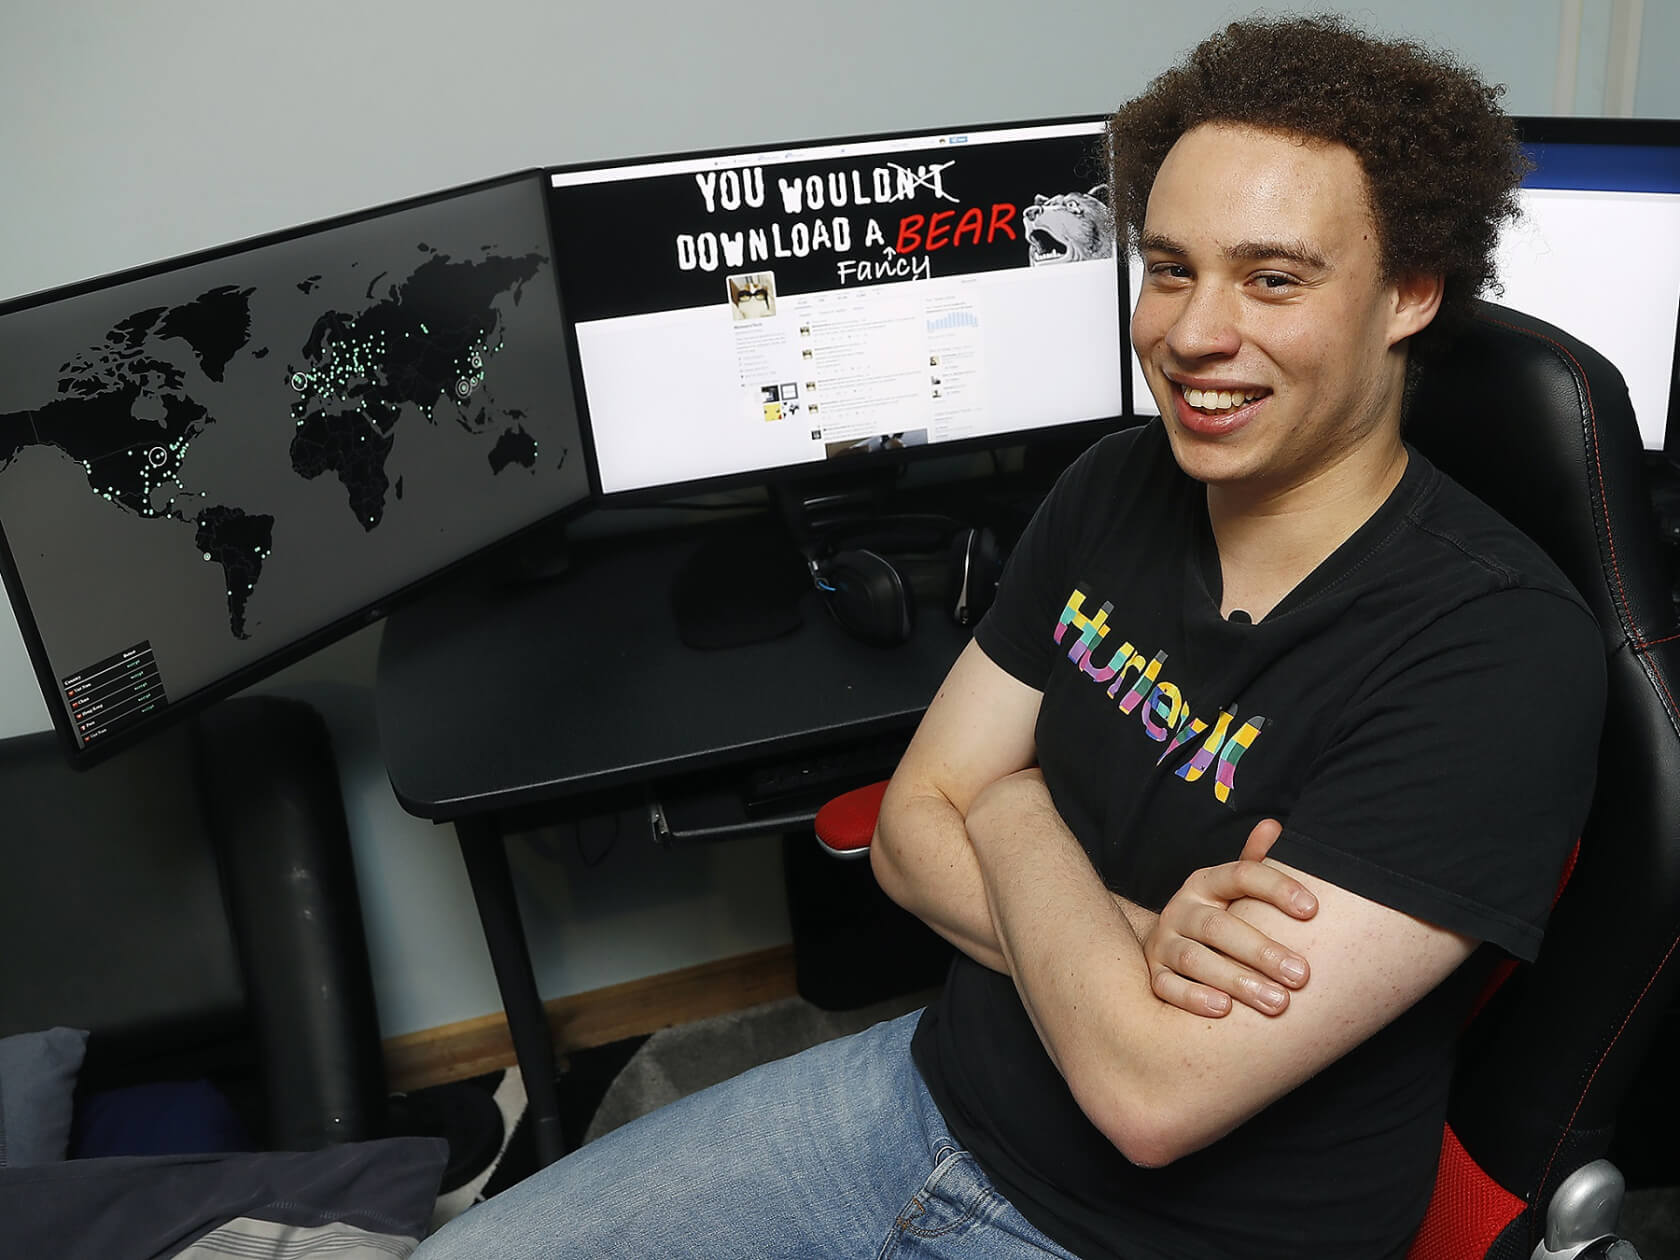 WannaCry savior Marcus Hutchins pleads not guilty to malware charges, is allowed back online